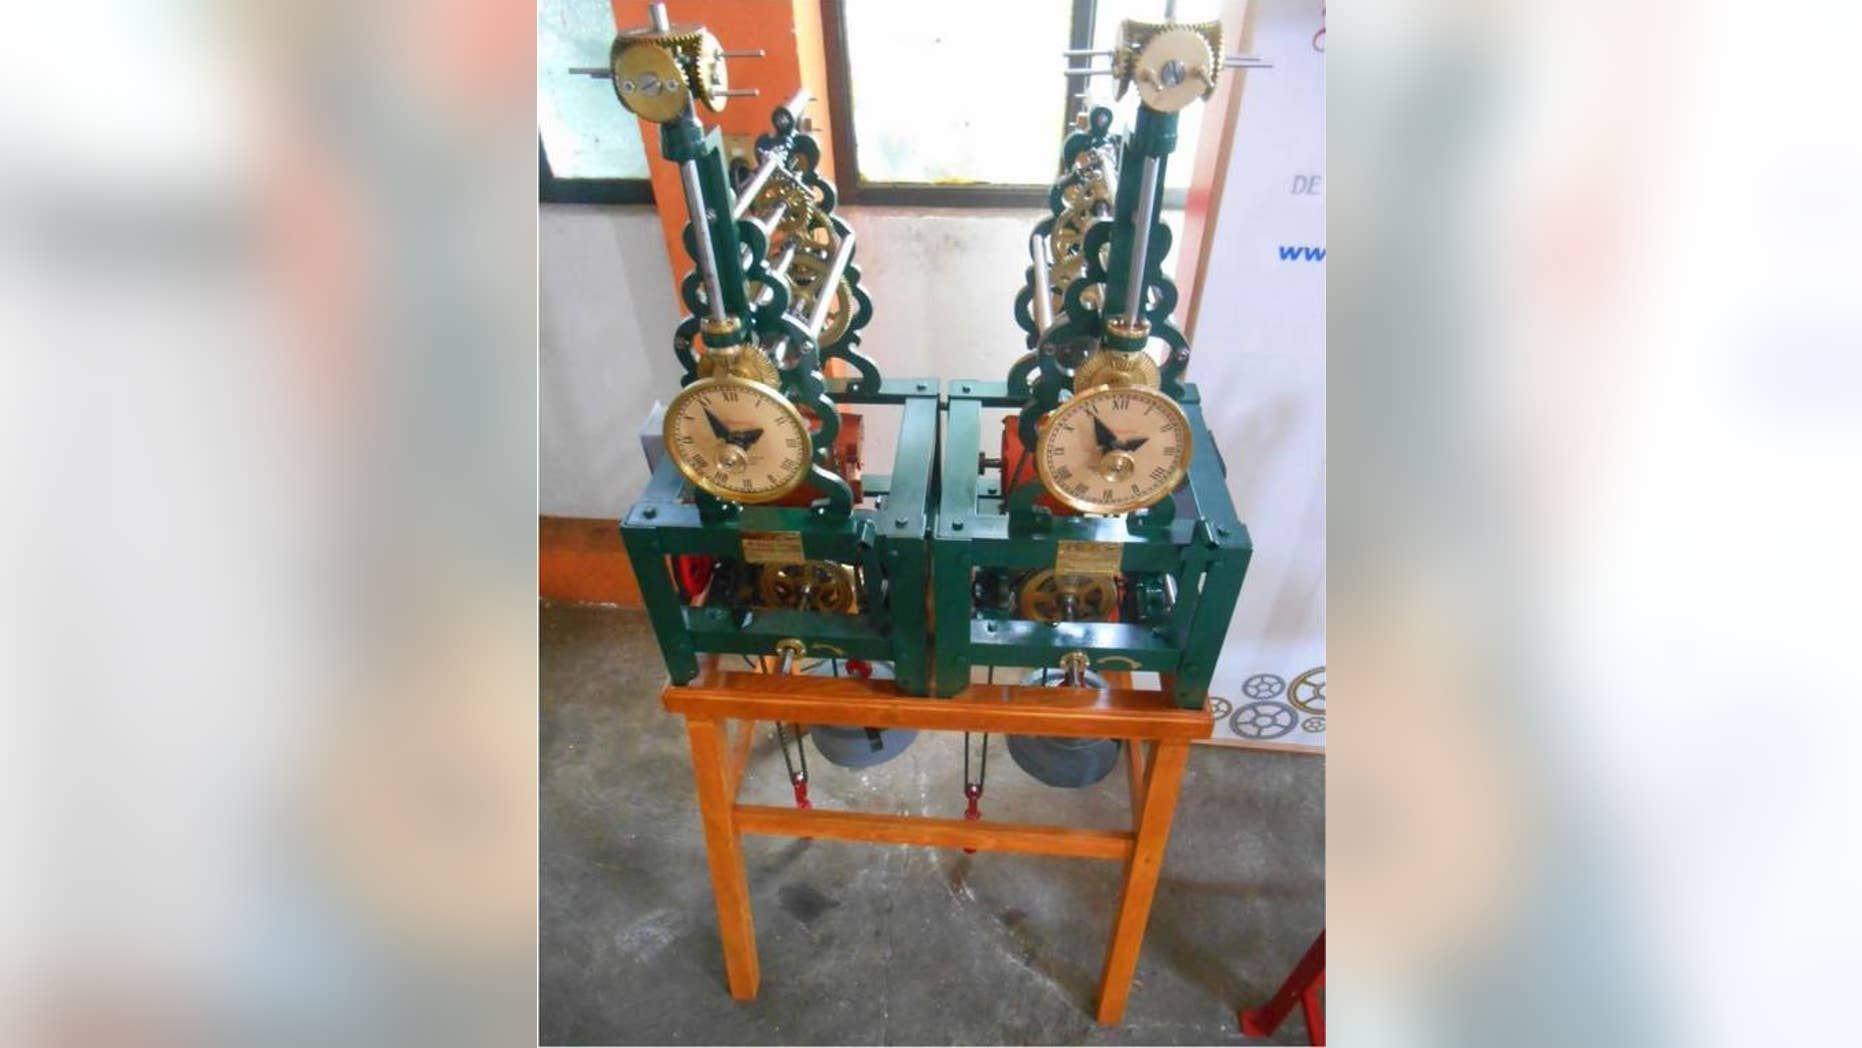 Pendulum clocks made by Mexican clock manufacturer Relojes Centenario were used to investigate the mechanisms behind synchronization.